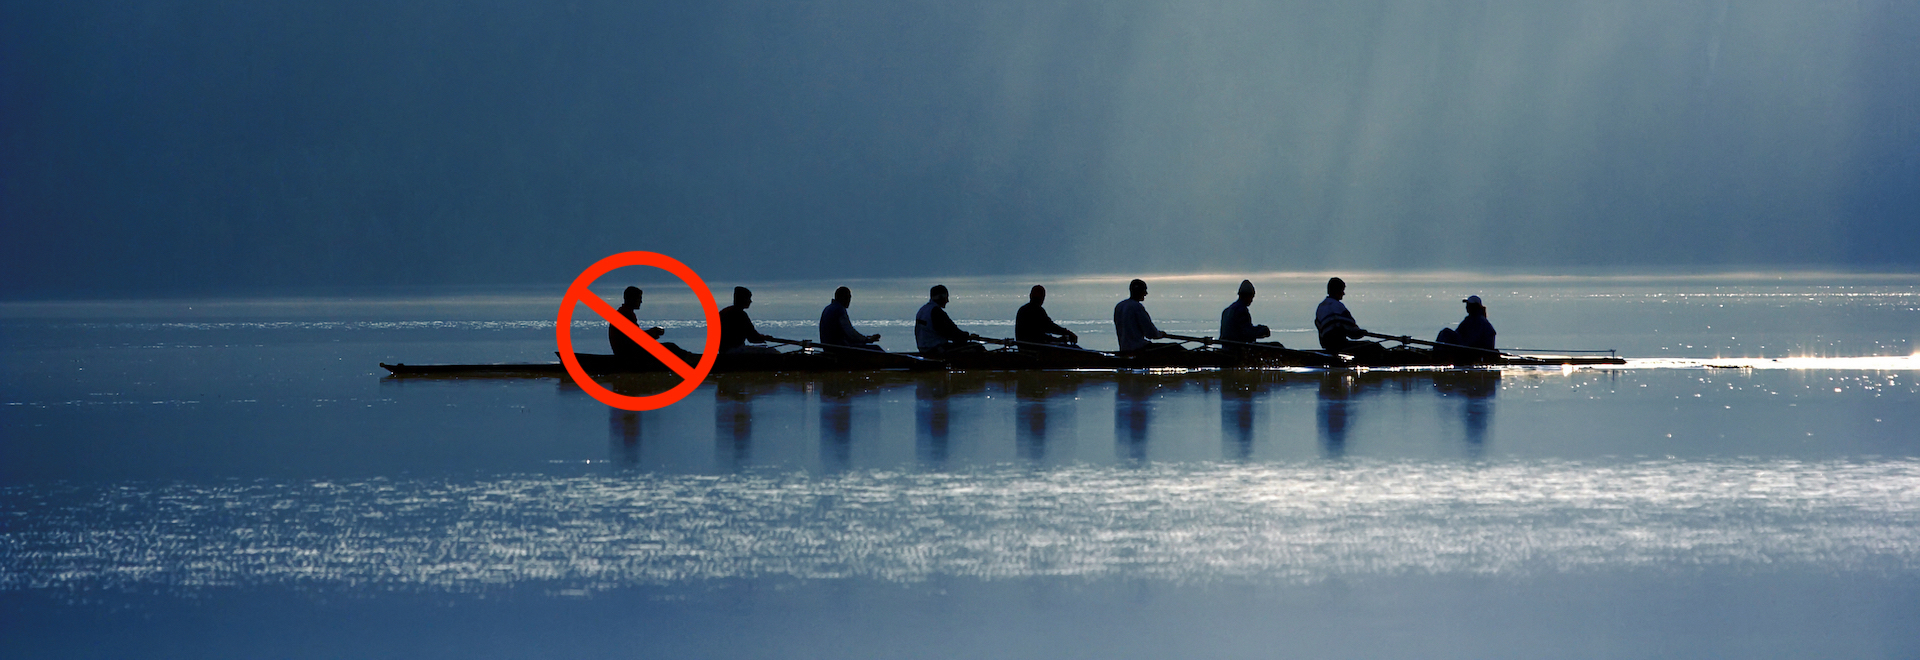 rowing rew red circle